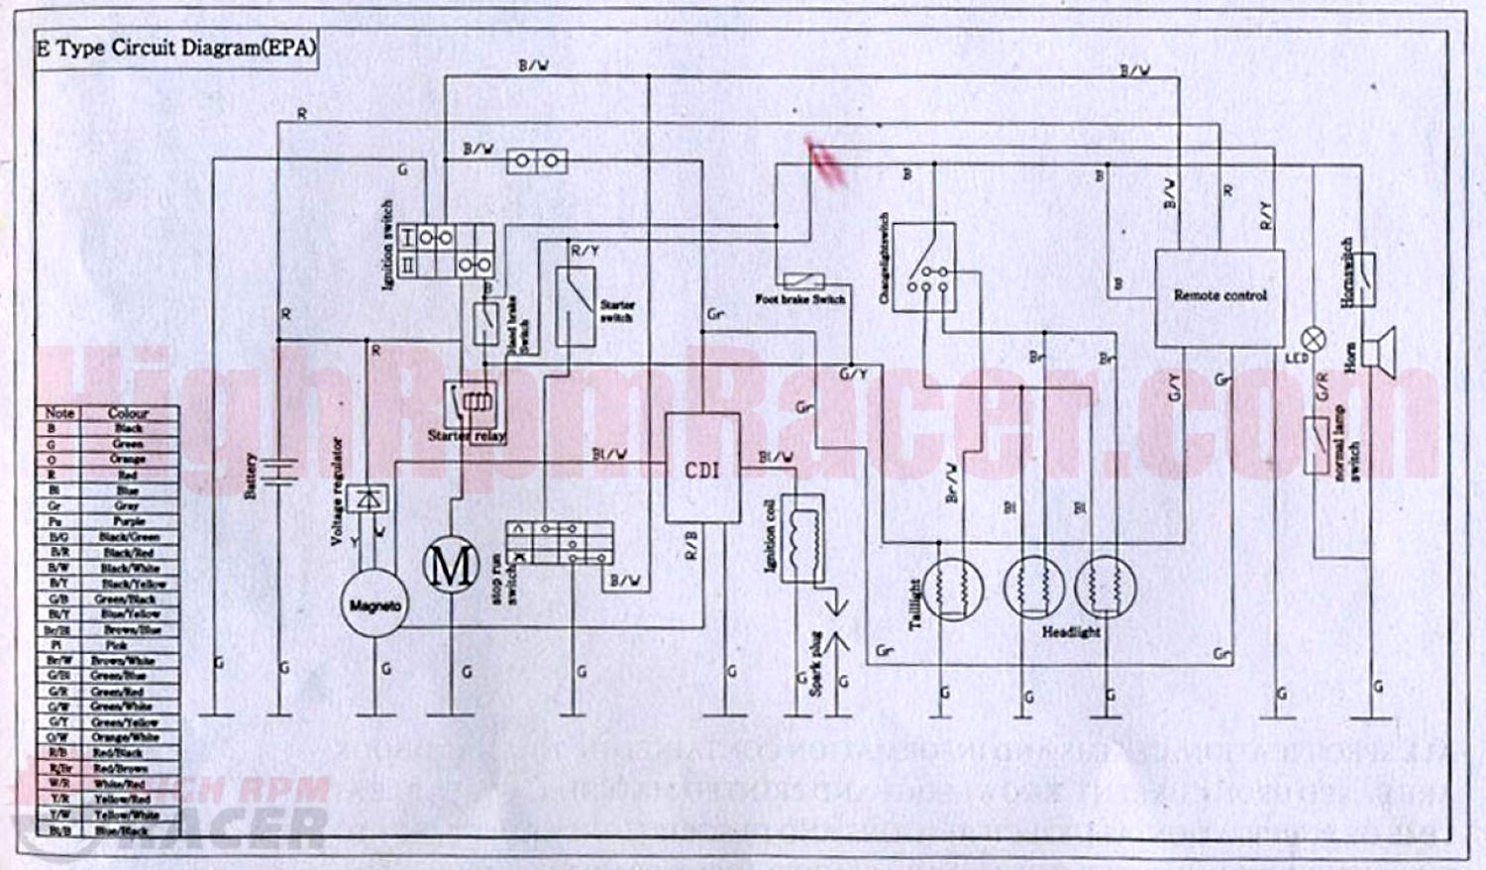 Suzuki 110Cc Atv Wiring Diagram | Wiring Diagram - Tao Tao 110 Atv Wiring Diagram